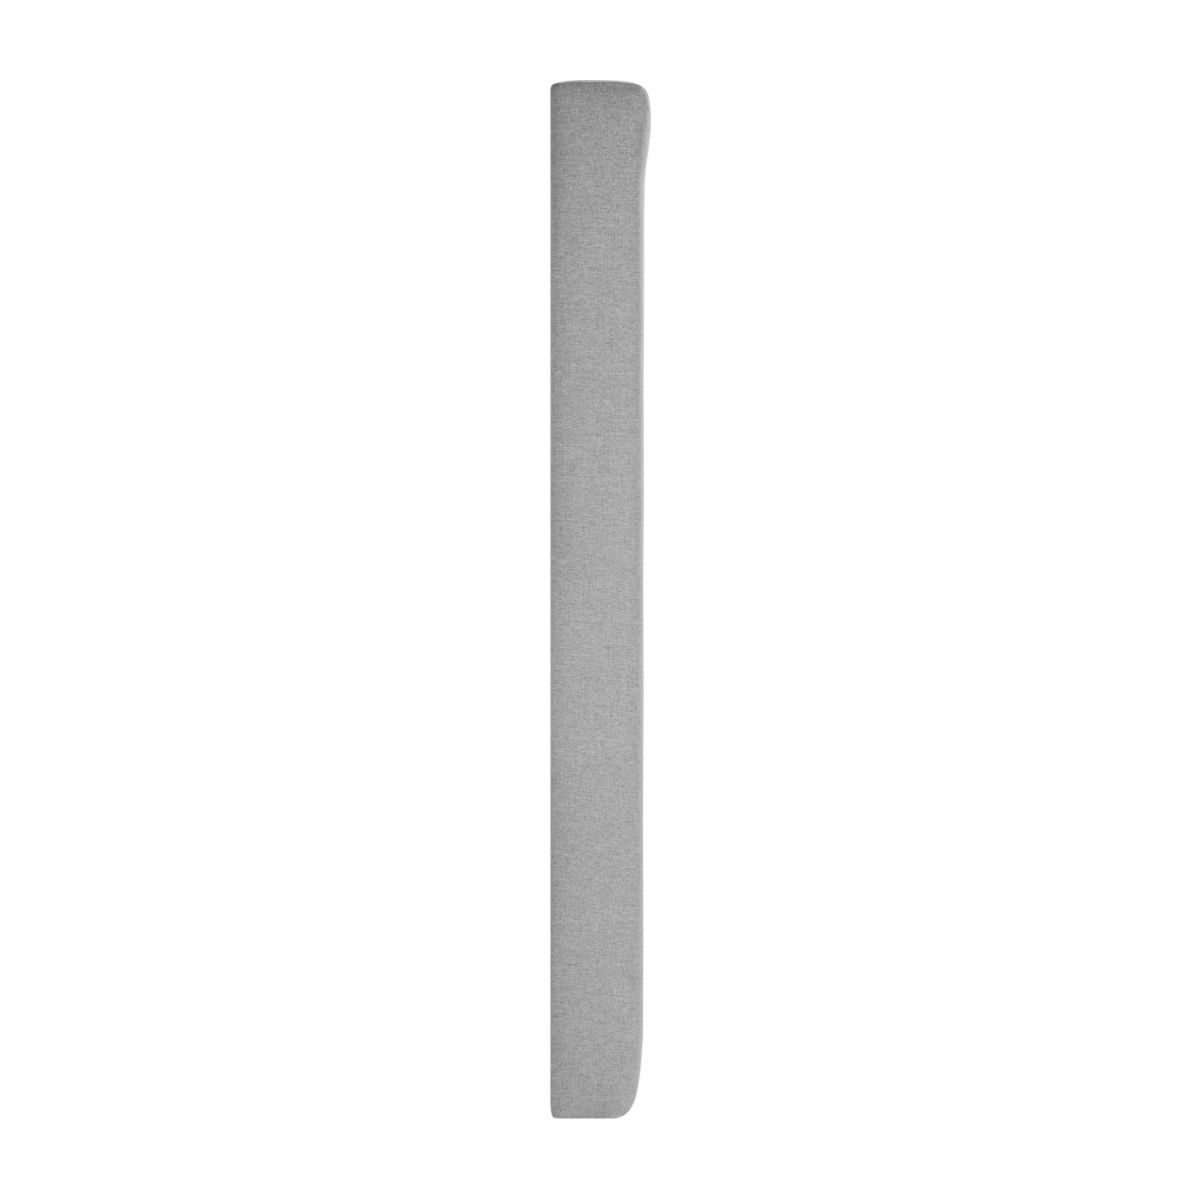 Headboard for 140cm box spring in fabric, mouse-grey n°4